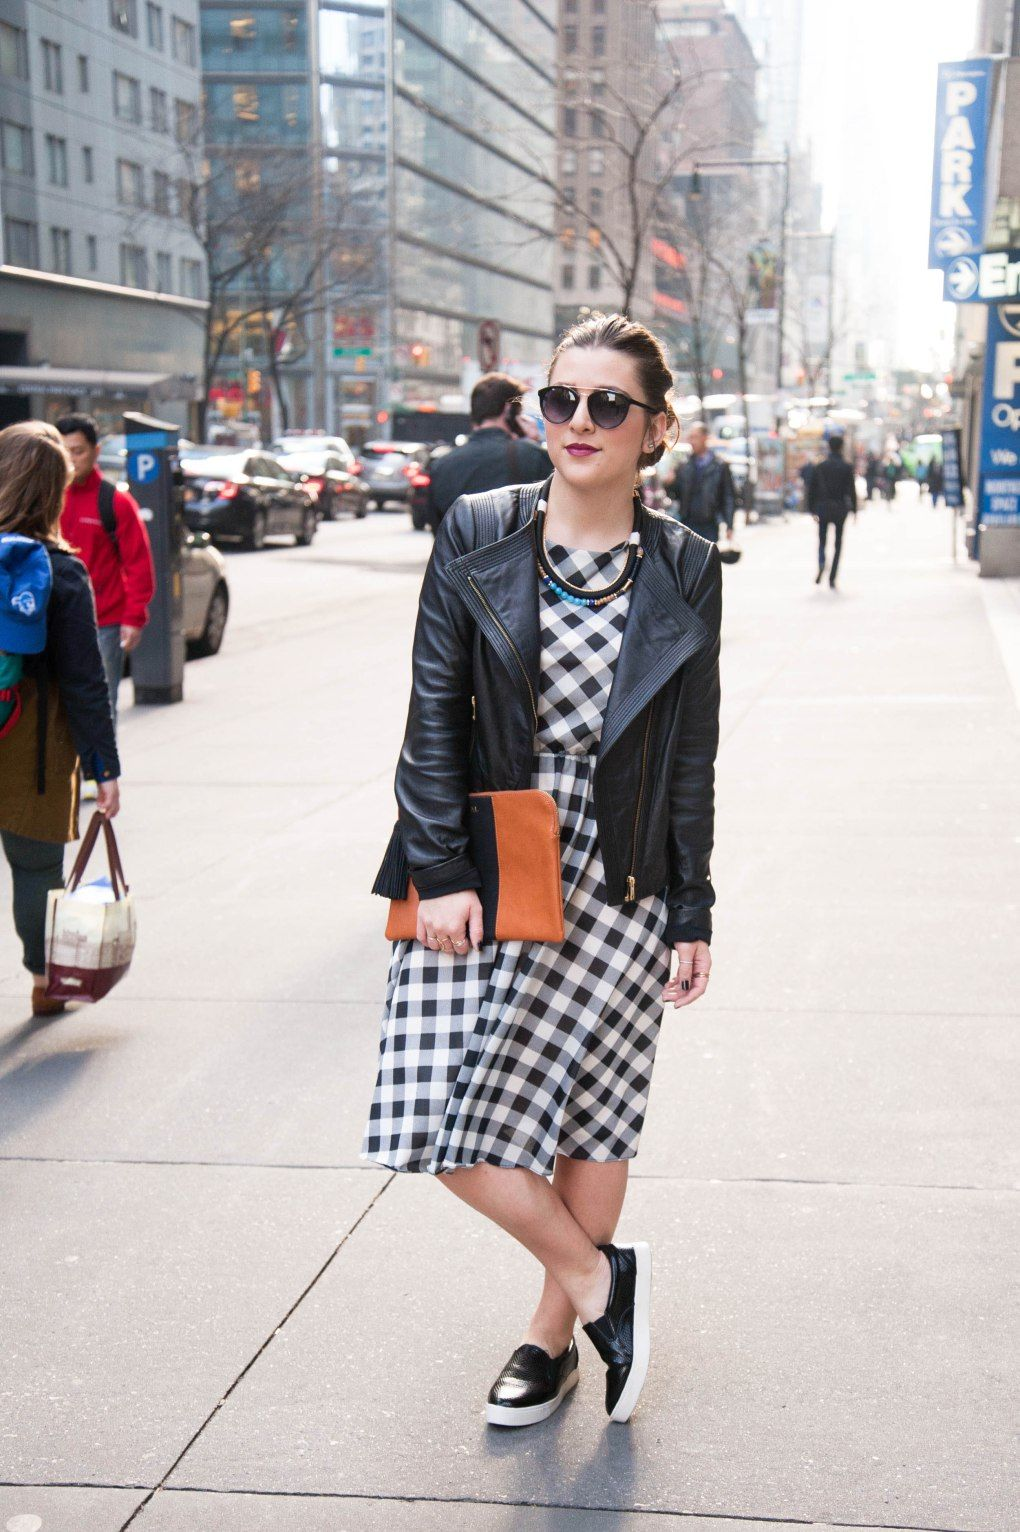 {Checkered Spring Dress | Simply Audree Kate} Black and white gingham print dress styled with a leather jacket and black slip on shoes